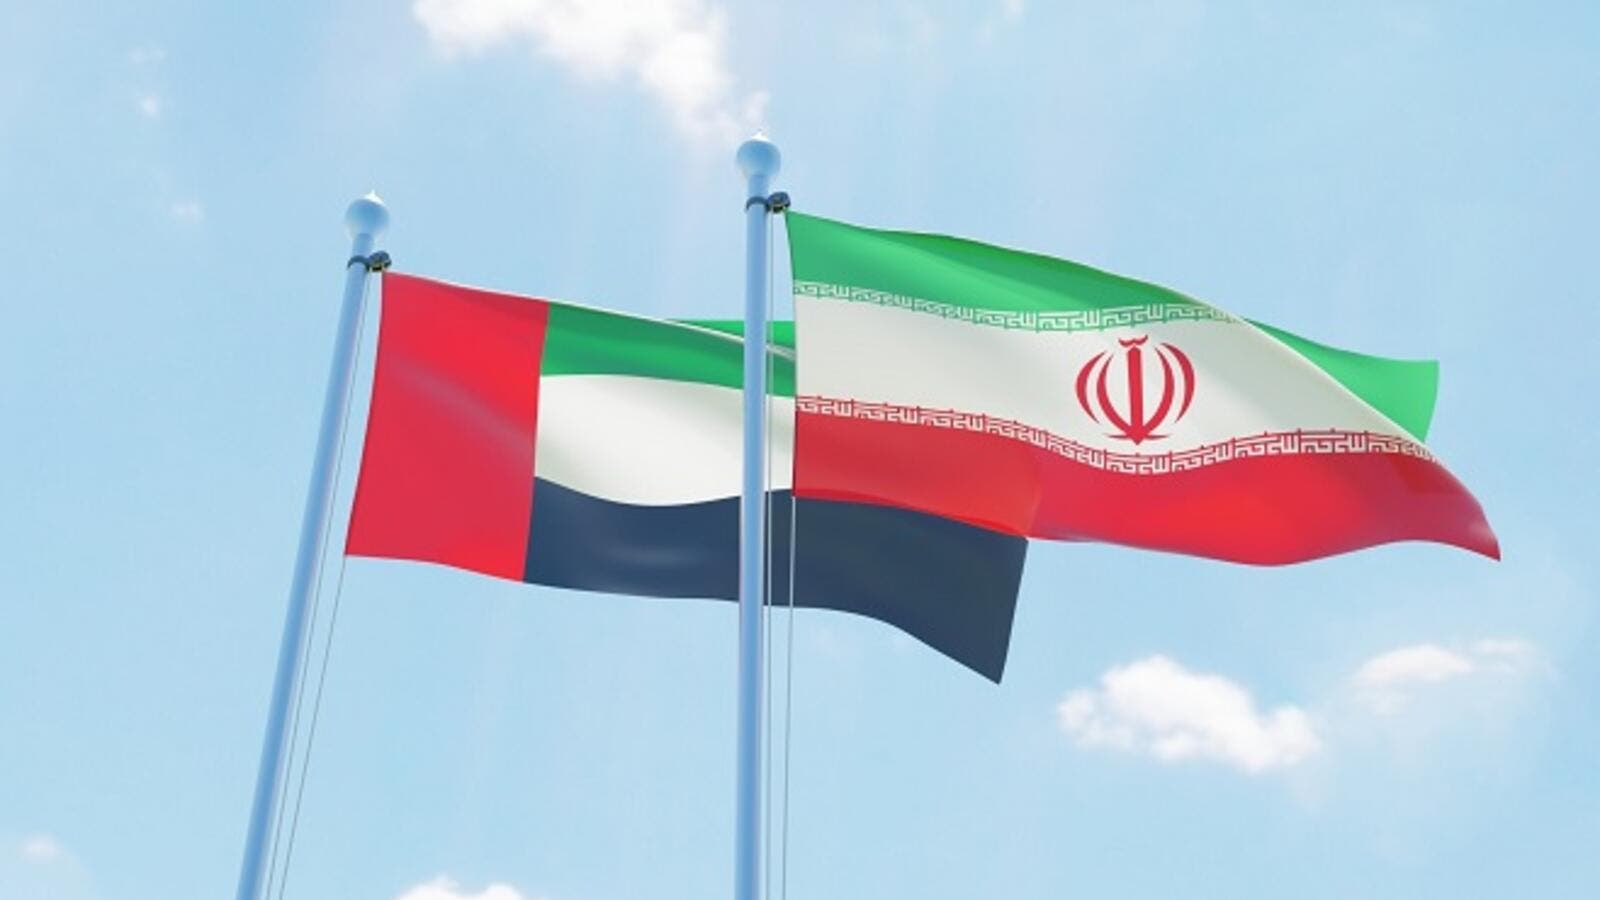 In 2017, exports and re-exports from the United Arab Emirates to Iran totalled $17 billion as most of that products passed through Dubai. (Shutterstock)